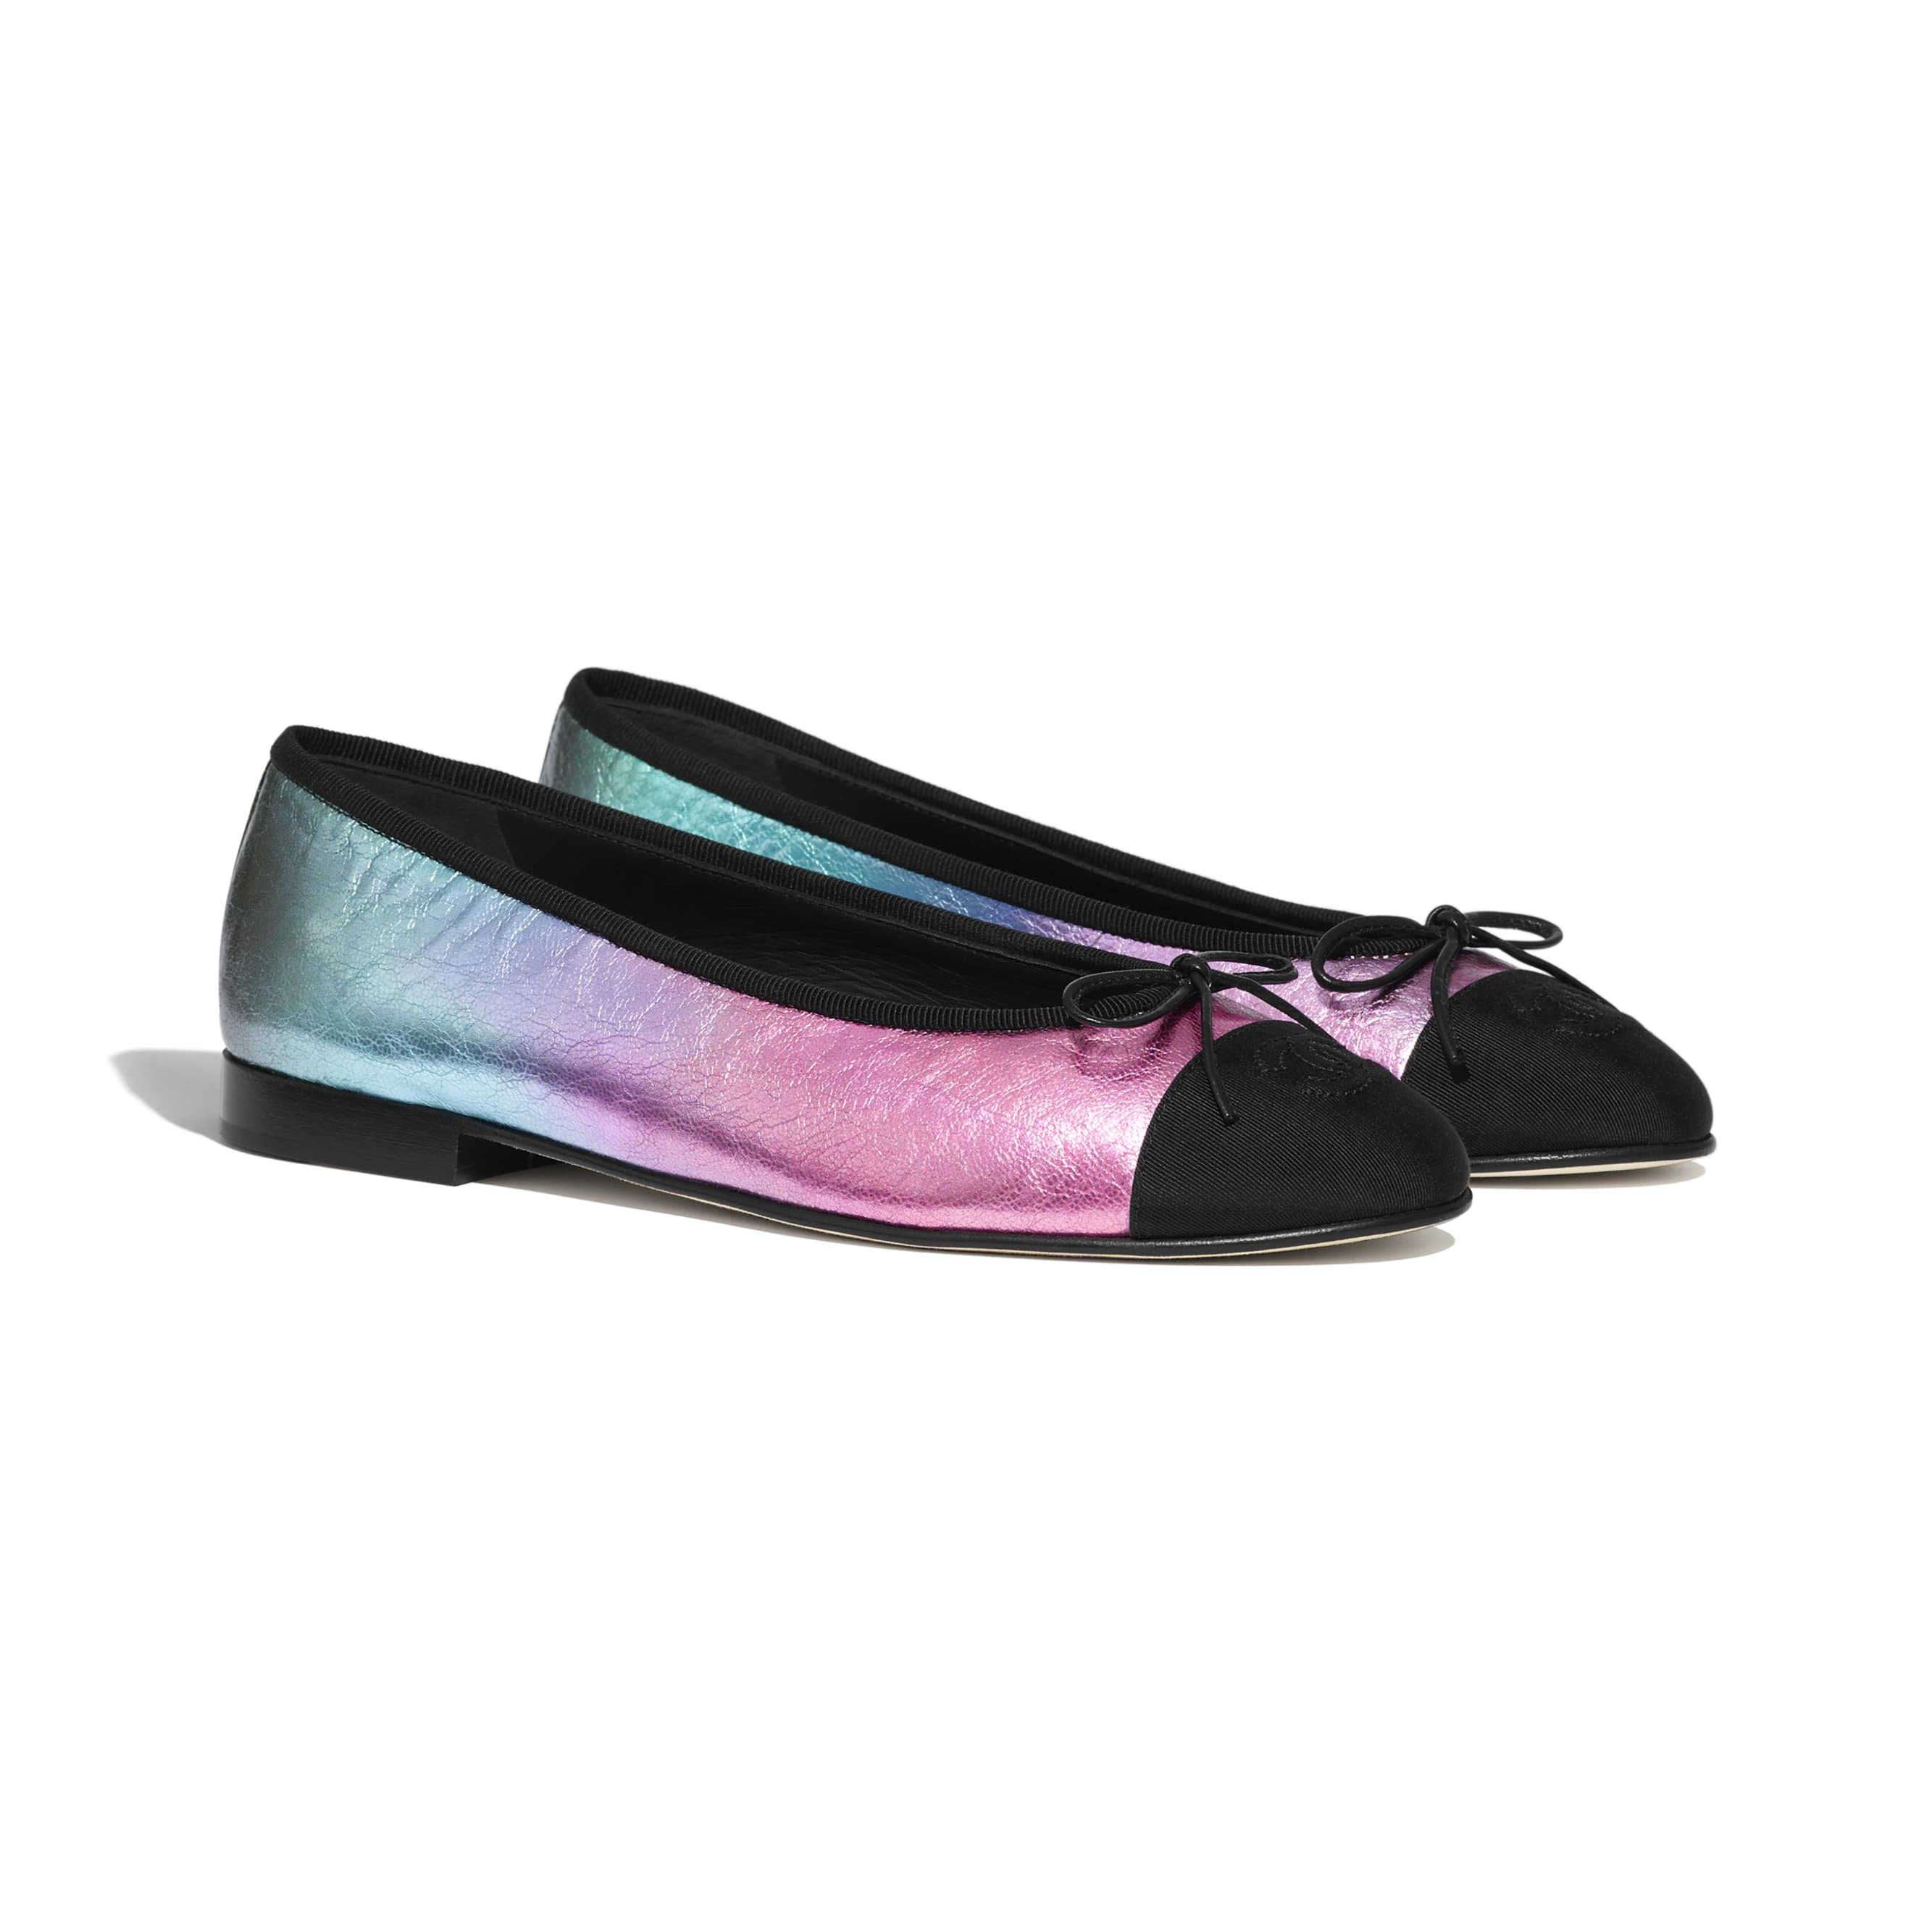 Flats - Multicolor & Black - Fantasy Goat & Grosgrain - CHANEL - Alternative view - see standard sized version